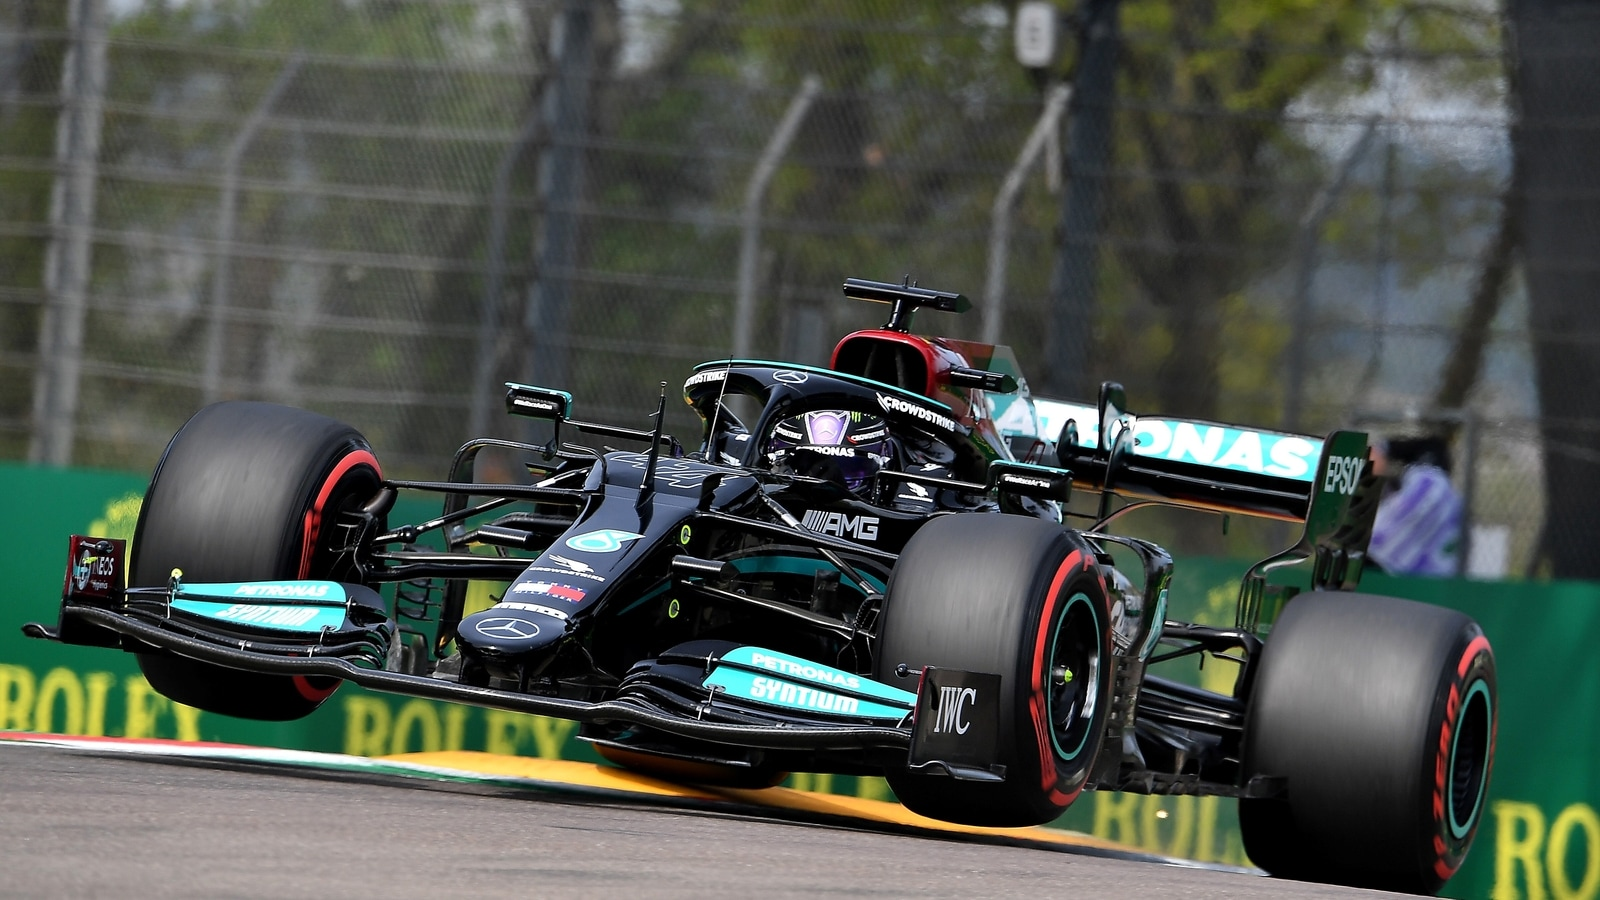 Miami Gp To Join F1 Calendar From 2022 In 10 Year Deal Hindustan Times